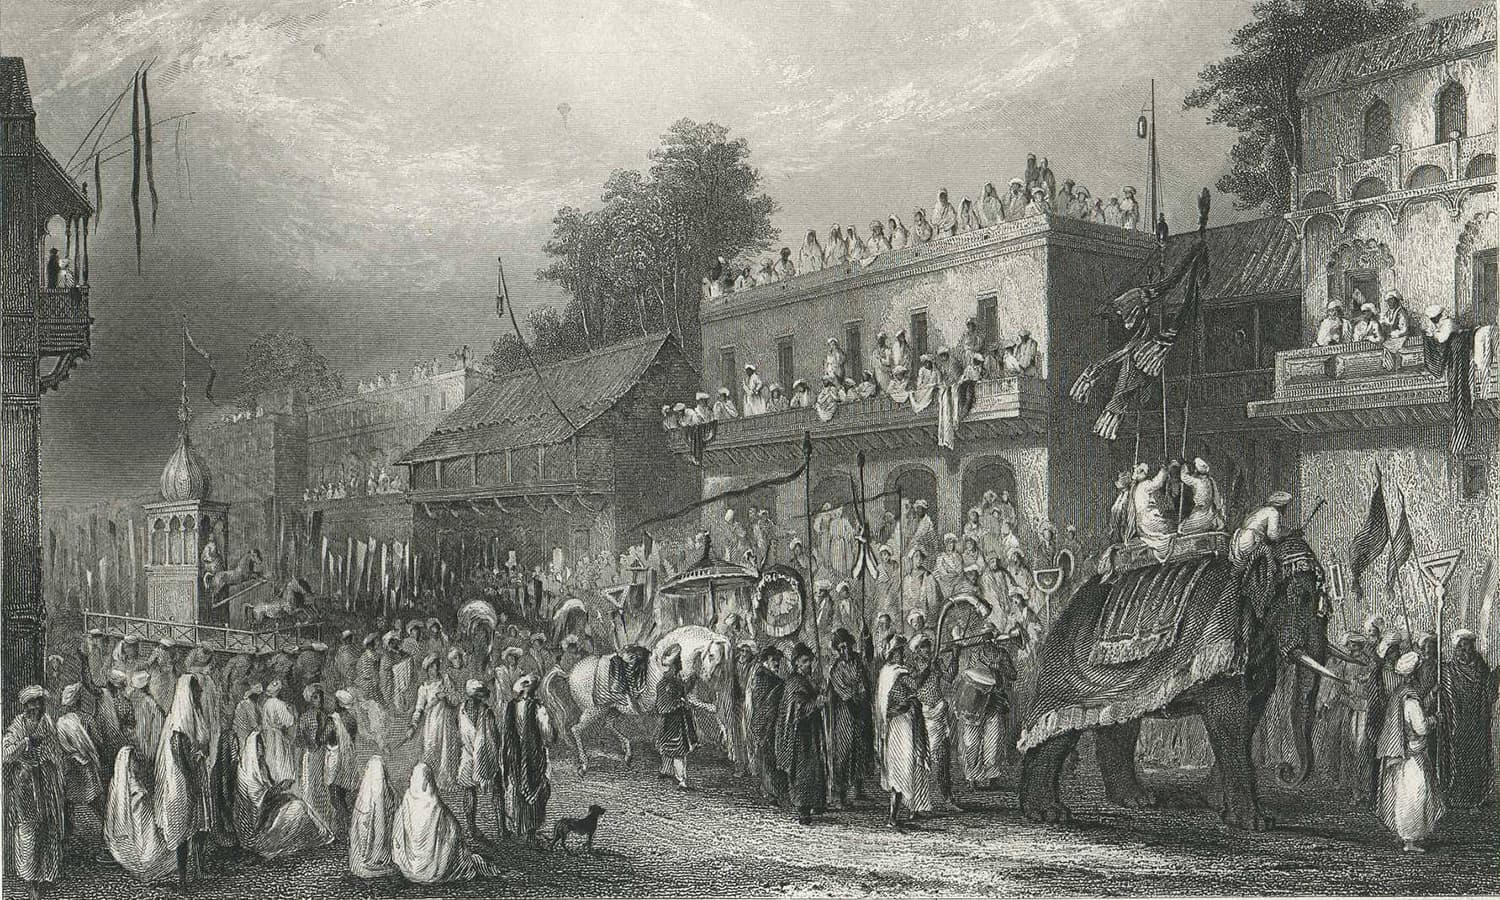 """Festival of the Moharram, Funeral of Houssein and Hoossein, India,"" by H. Melville, Fisher, Son, & Co., London, c.1840.—Columbia.edu"